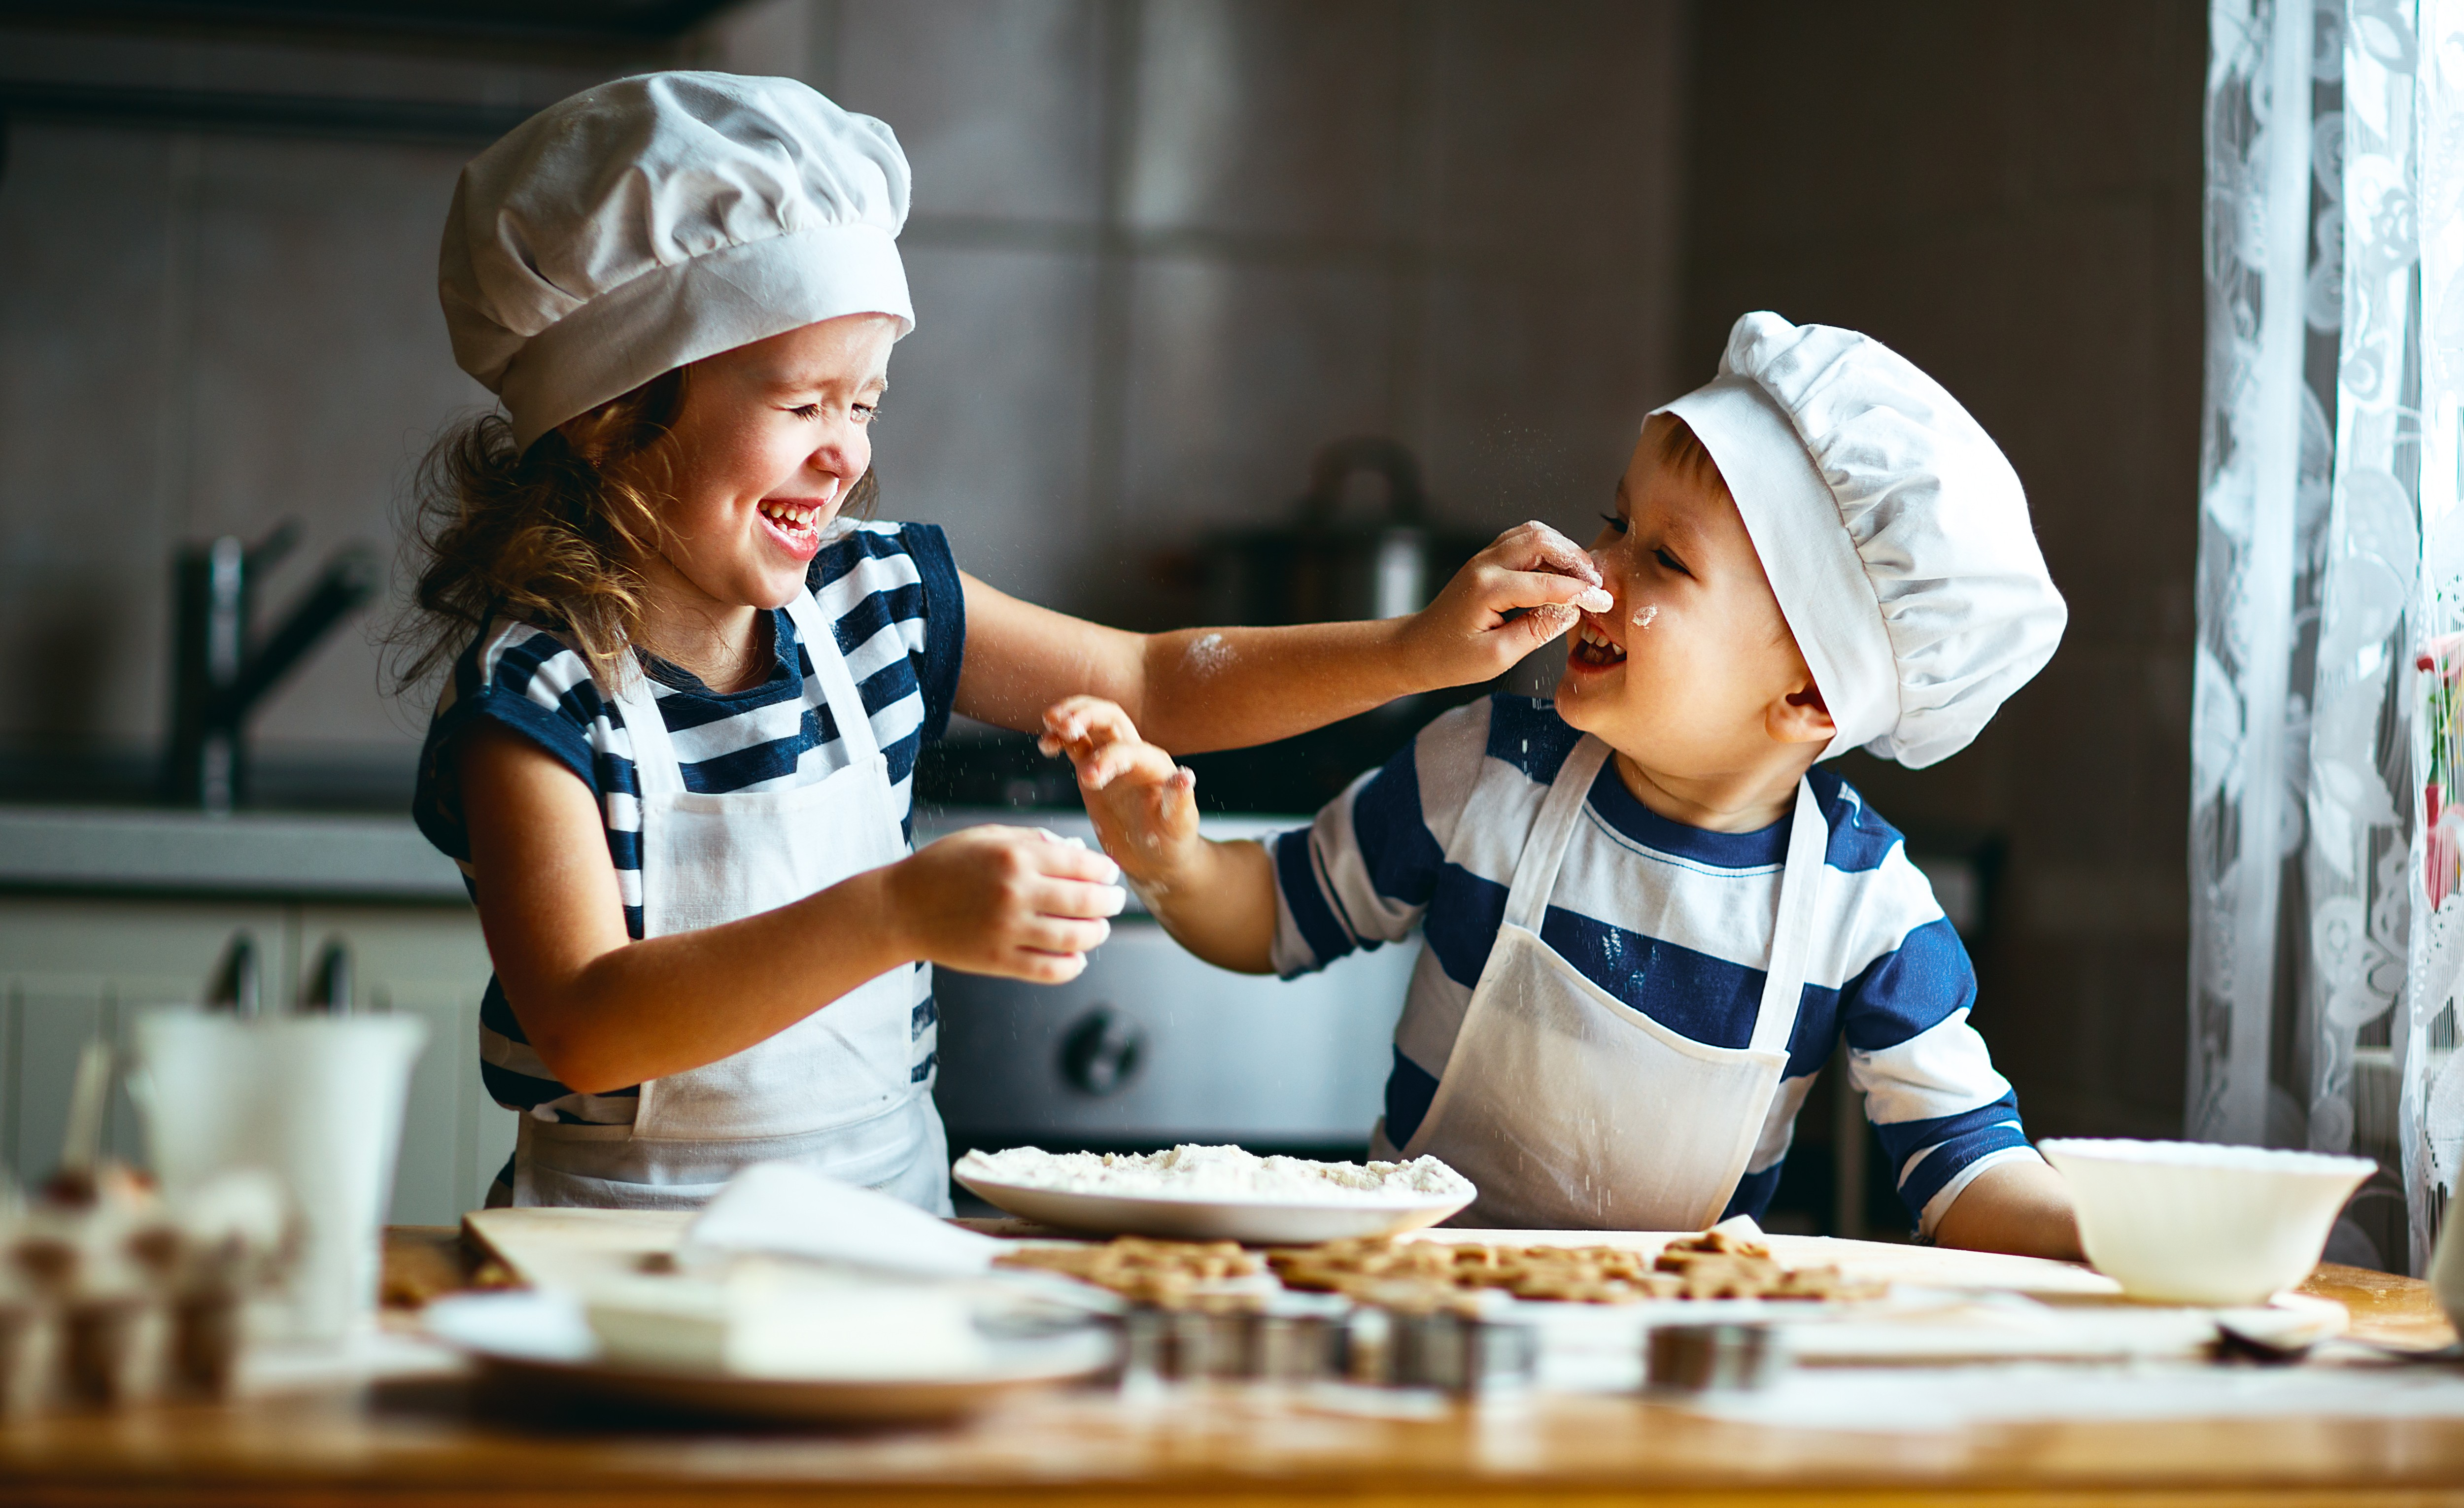 Fun Things to Do with Your Kids in the School Holidays